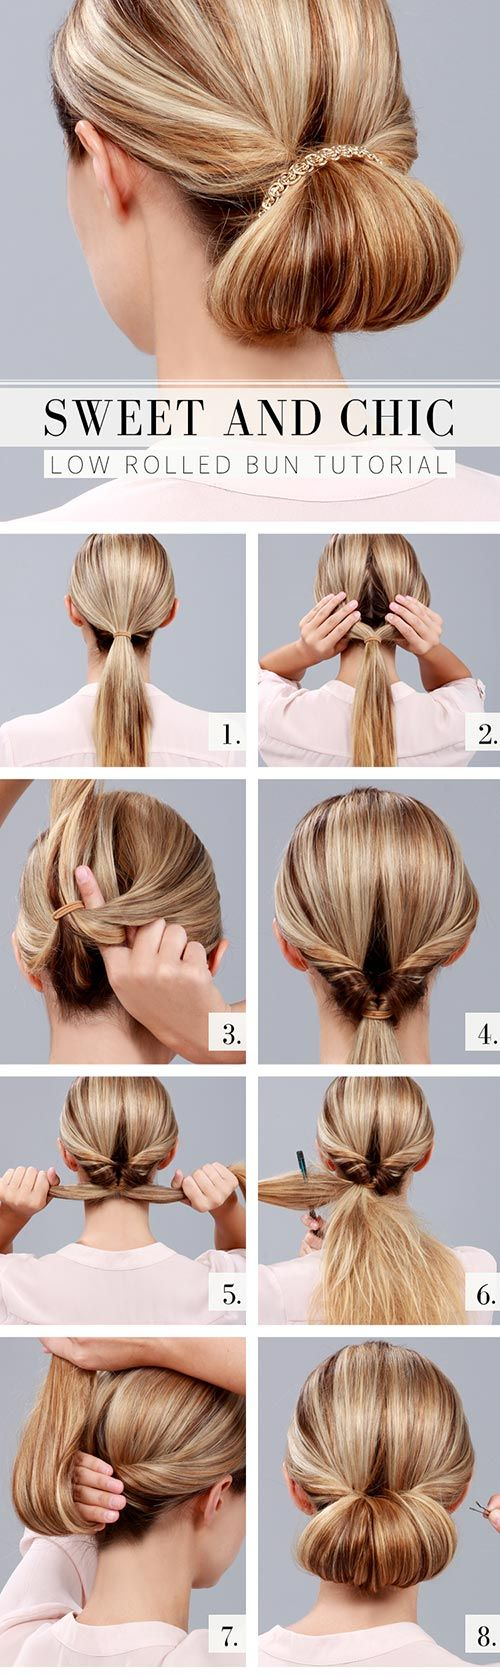 Twelve leichte haar tutorials für rather appears simple hairstyles